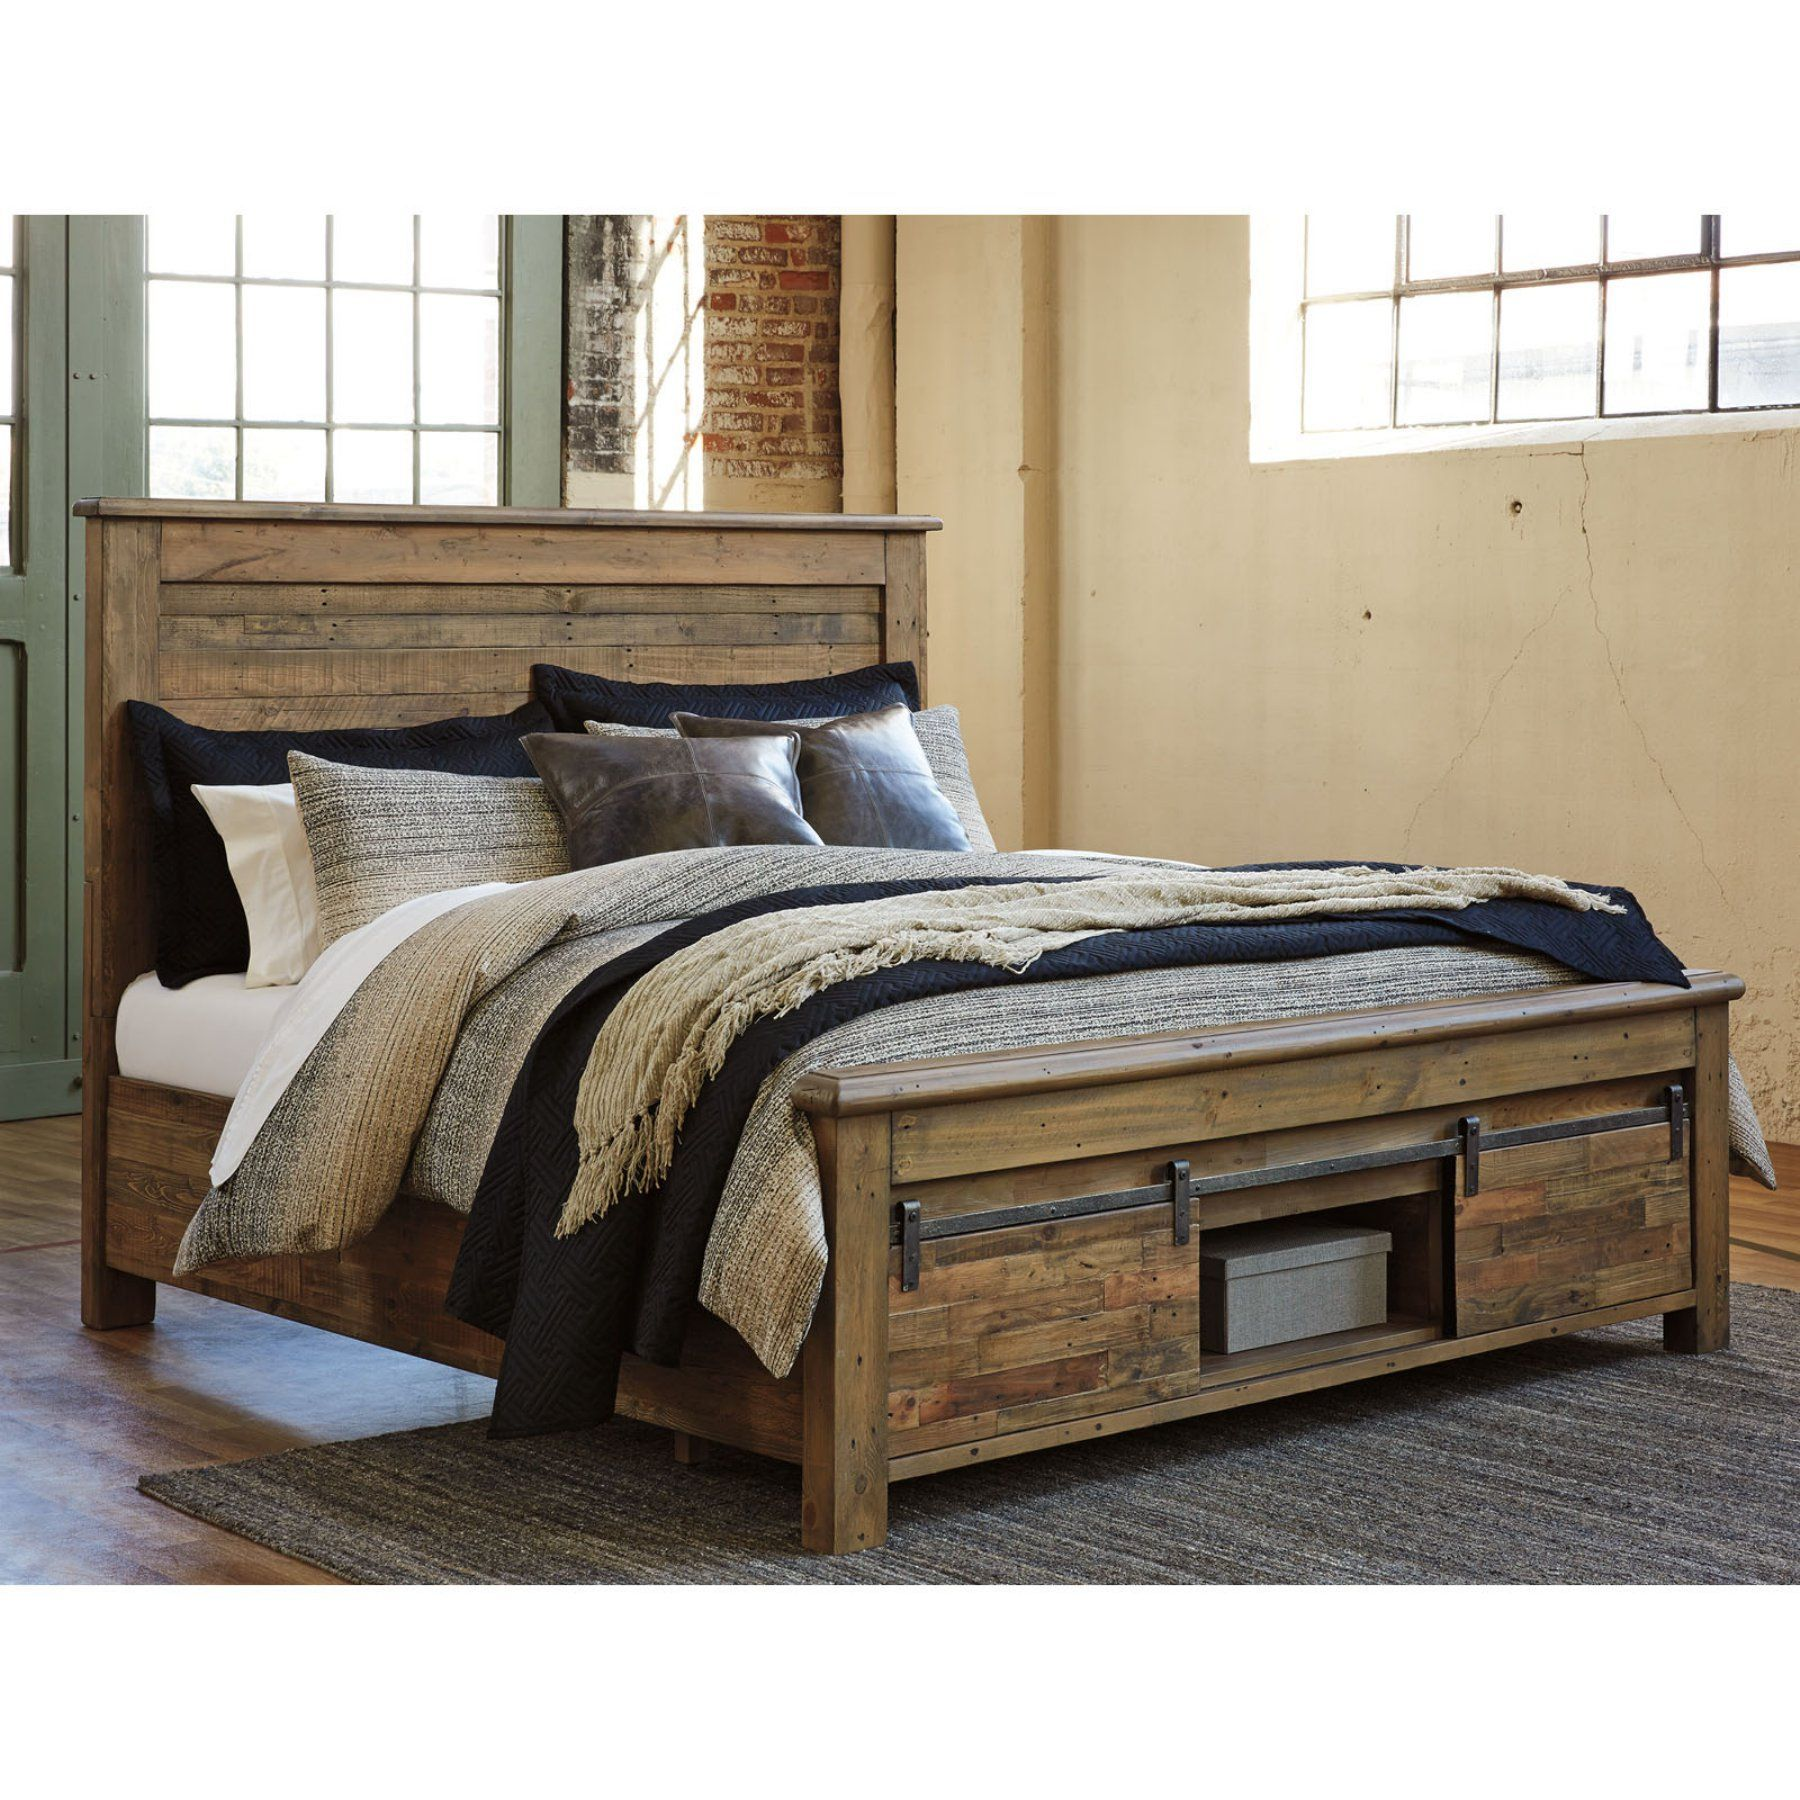 Signature Design By Ashley Sommerford Storage Panel Bed King